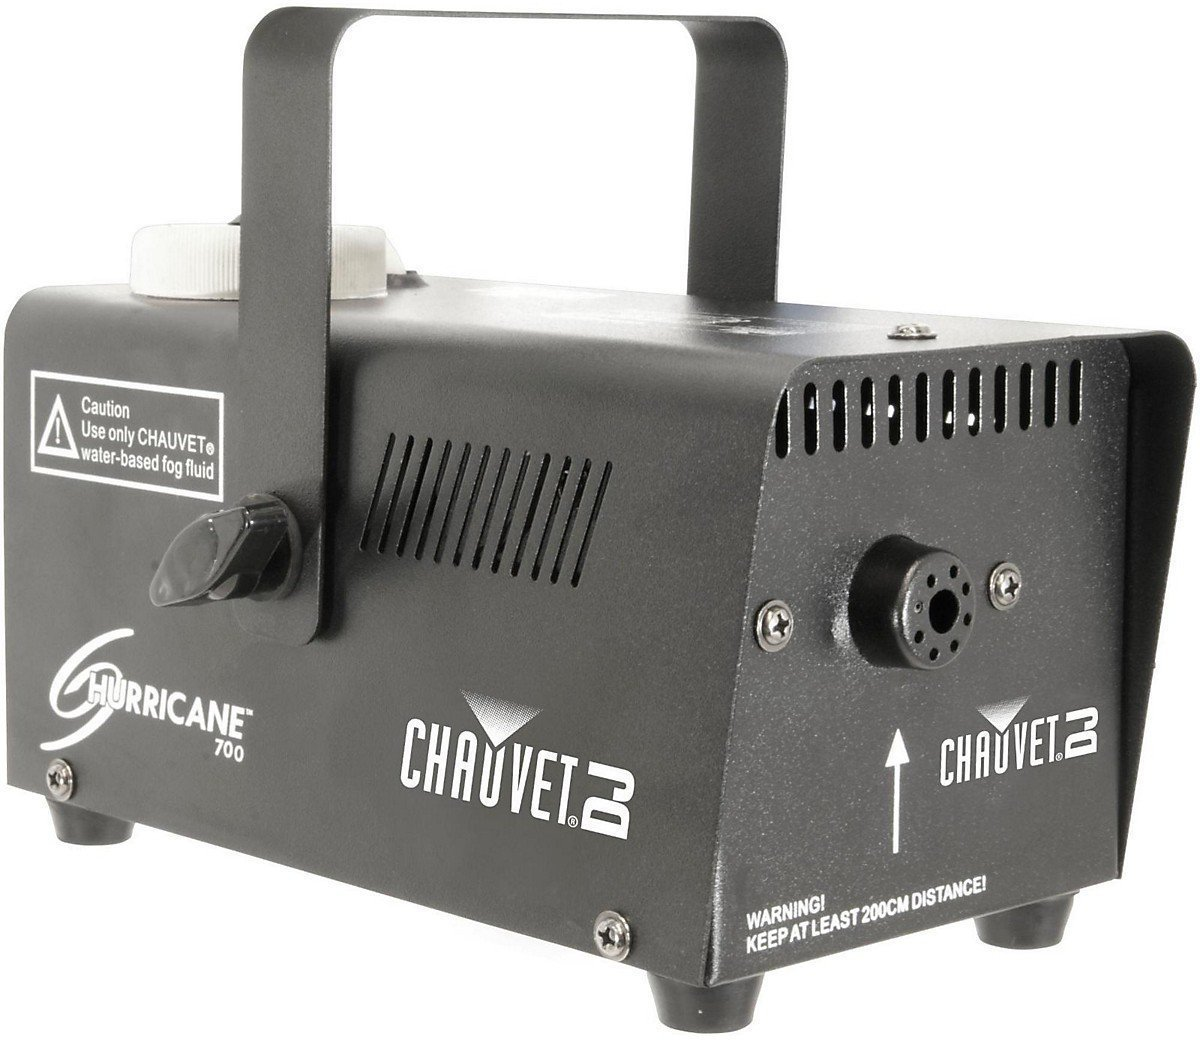 chauvet-lighting-dj-700-hurricane-fog-machine